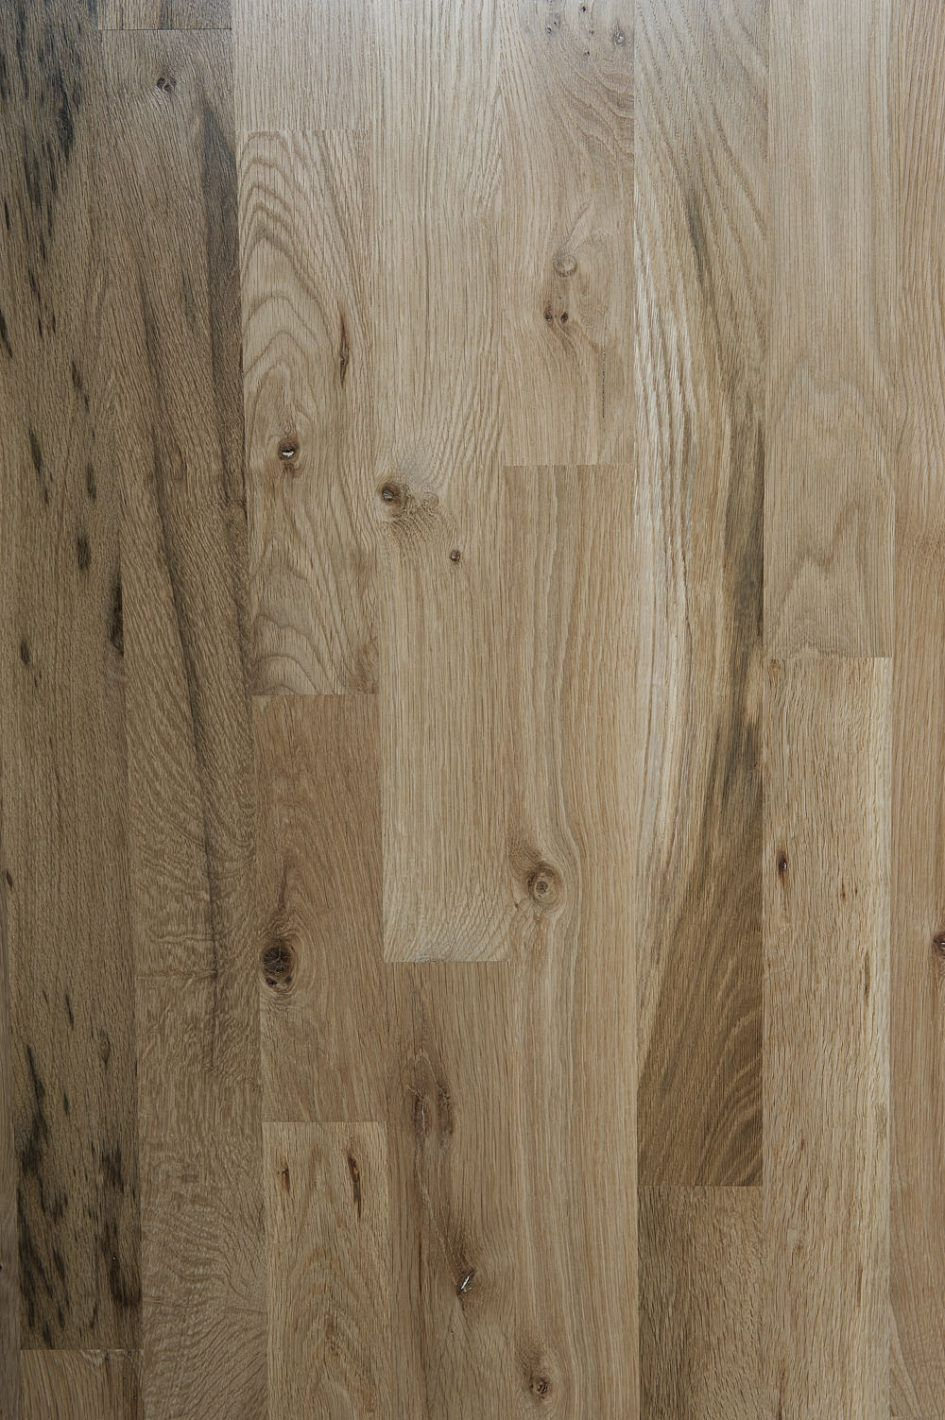 Hardwood Floor Unfinished Flooring White Oak Hardwood Prices Engineered 2 1 4 White Oak Hardwood Flooring Unfinished Decoracao